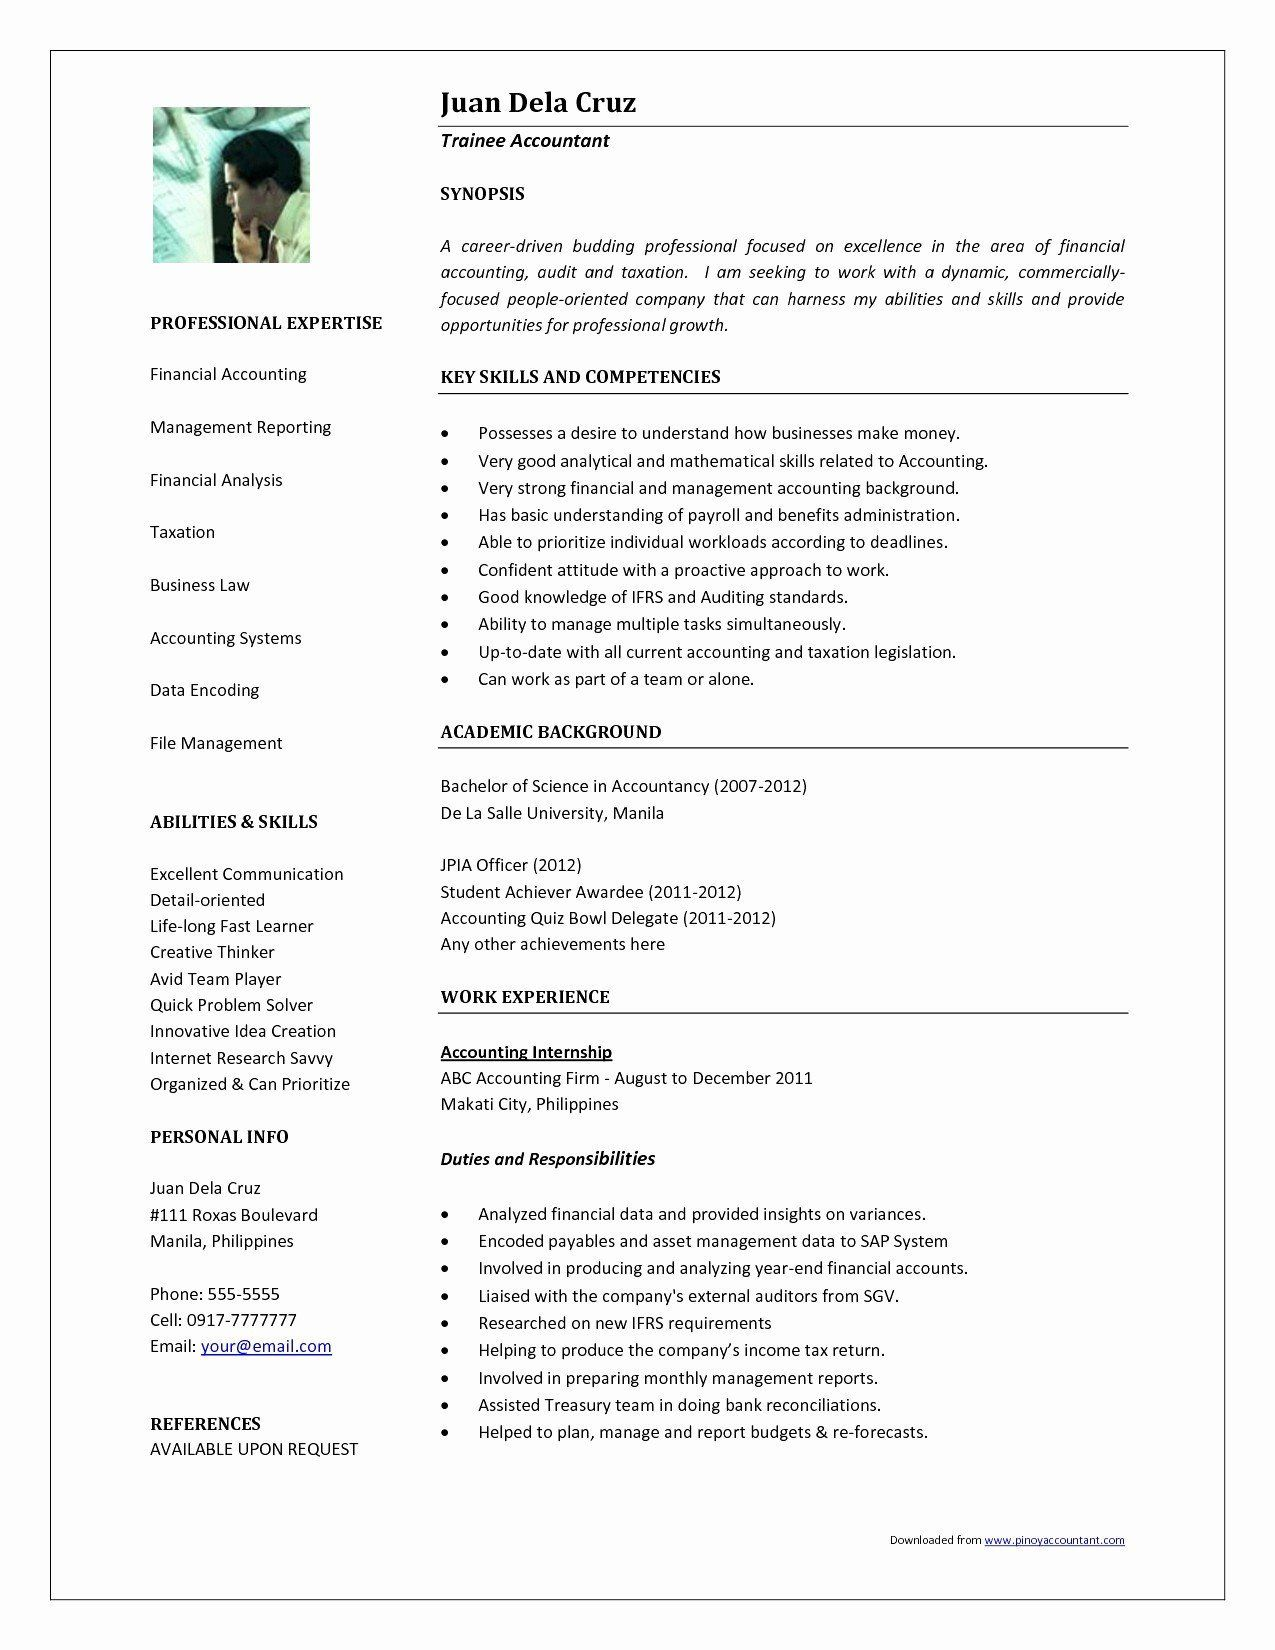 30 Skills For Accounting Resume In 2020 With Images Business